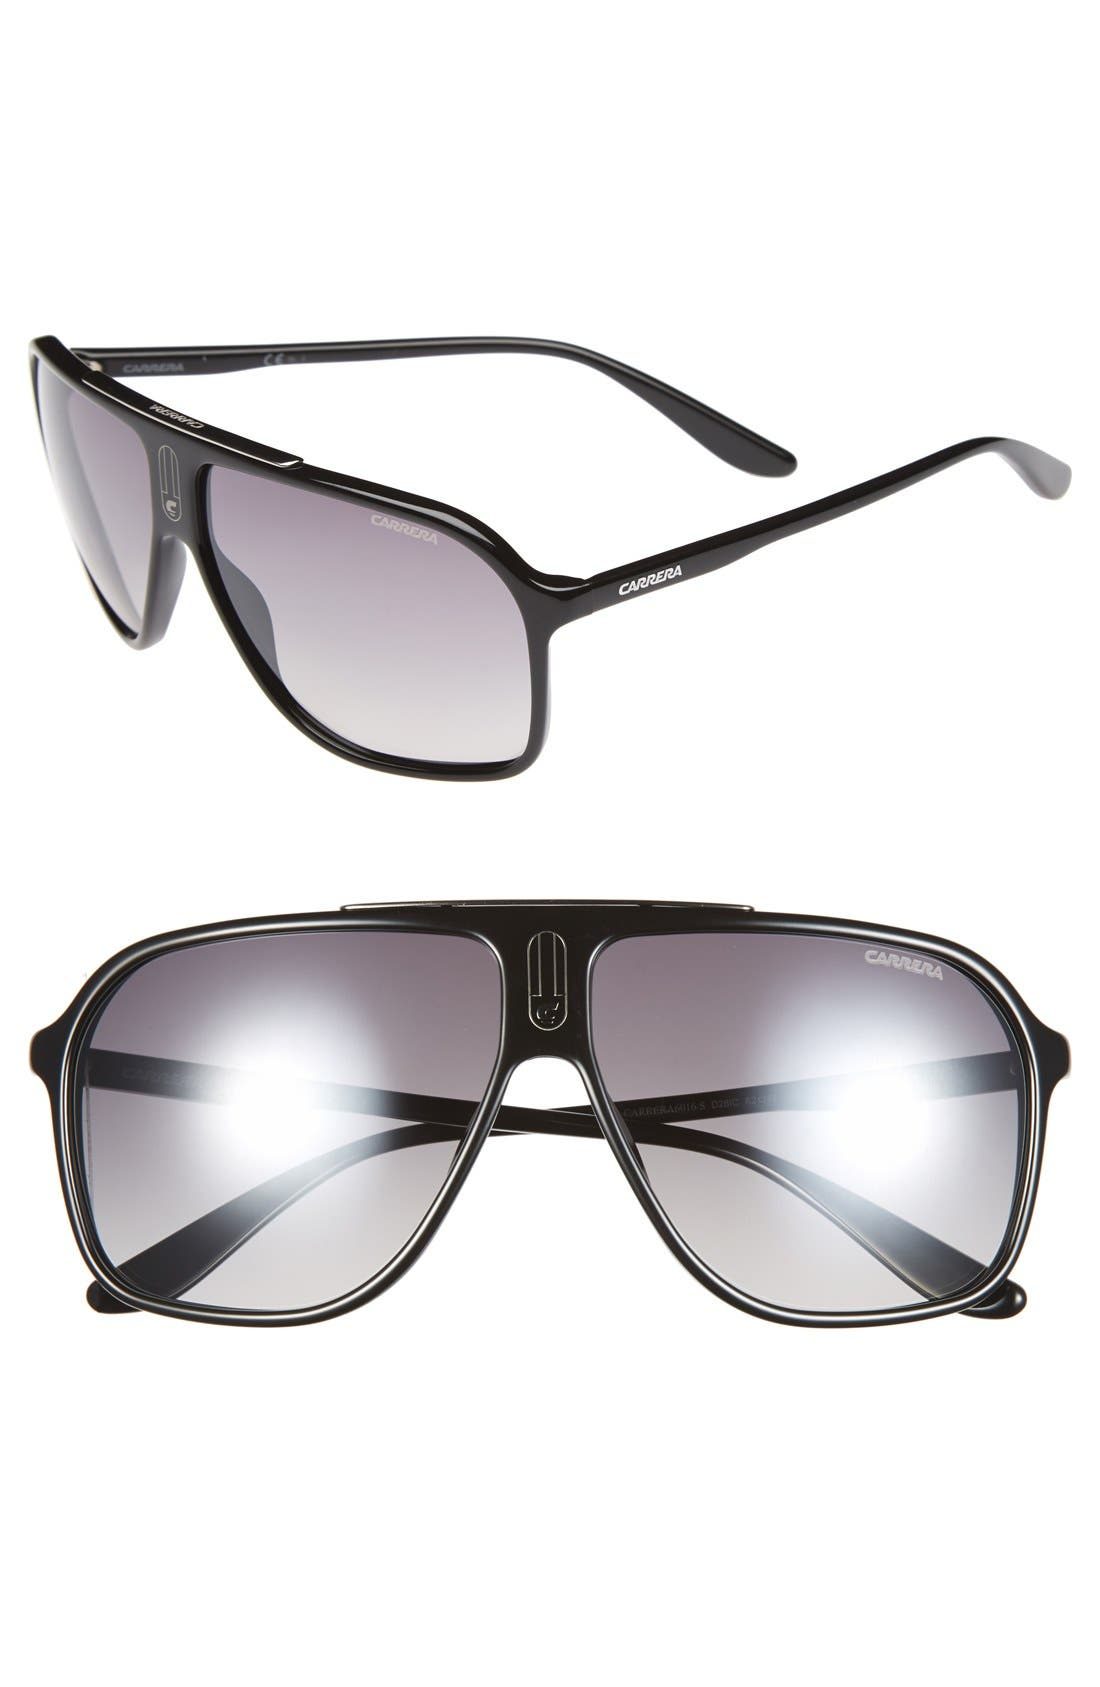 Carrera Eyewear 62Mm Sunglasses -